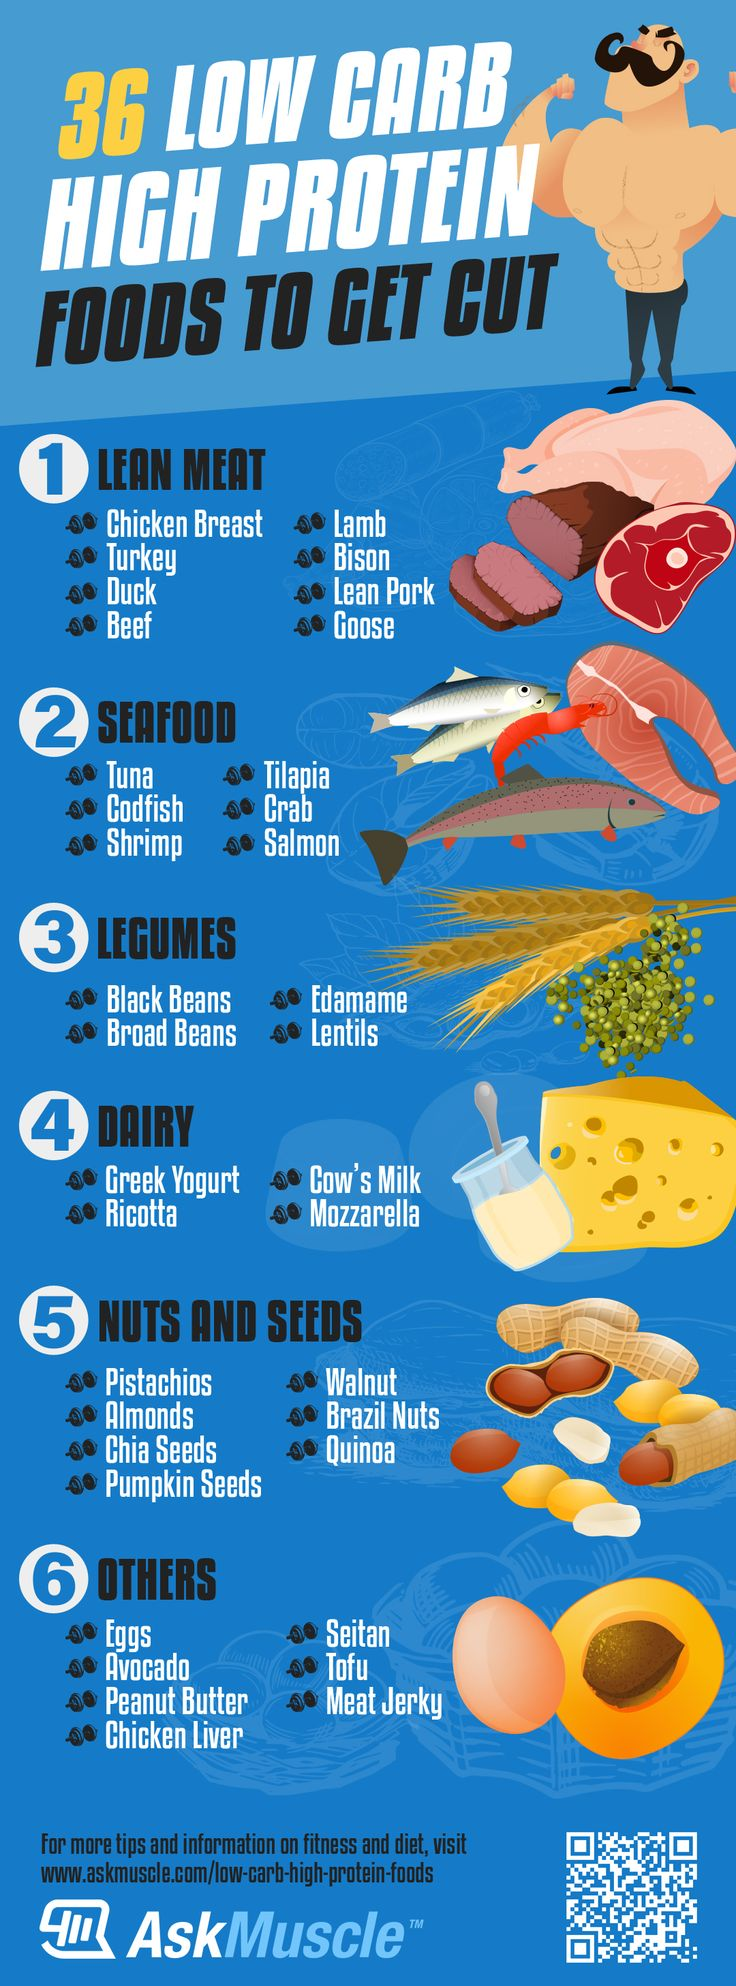 36 Low Carb High Protein Foods To Get Cut